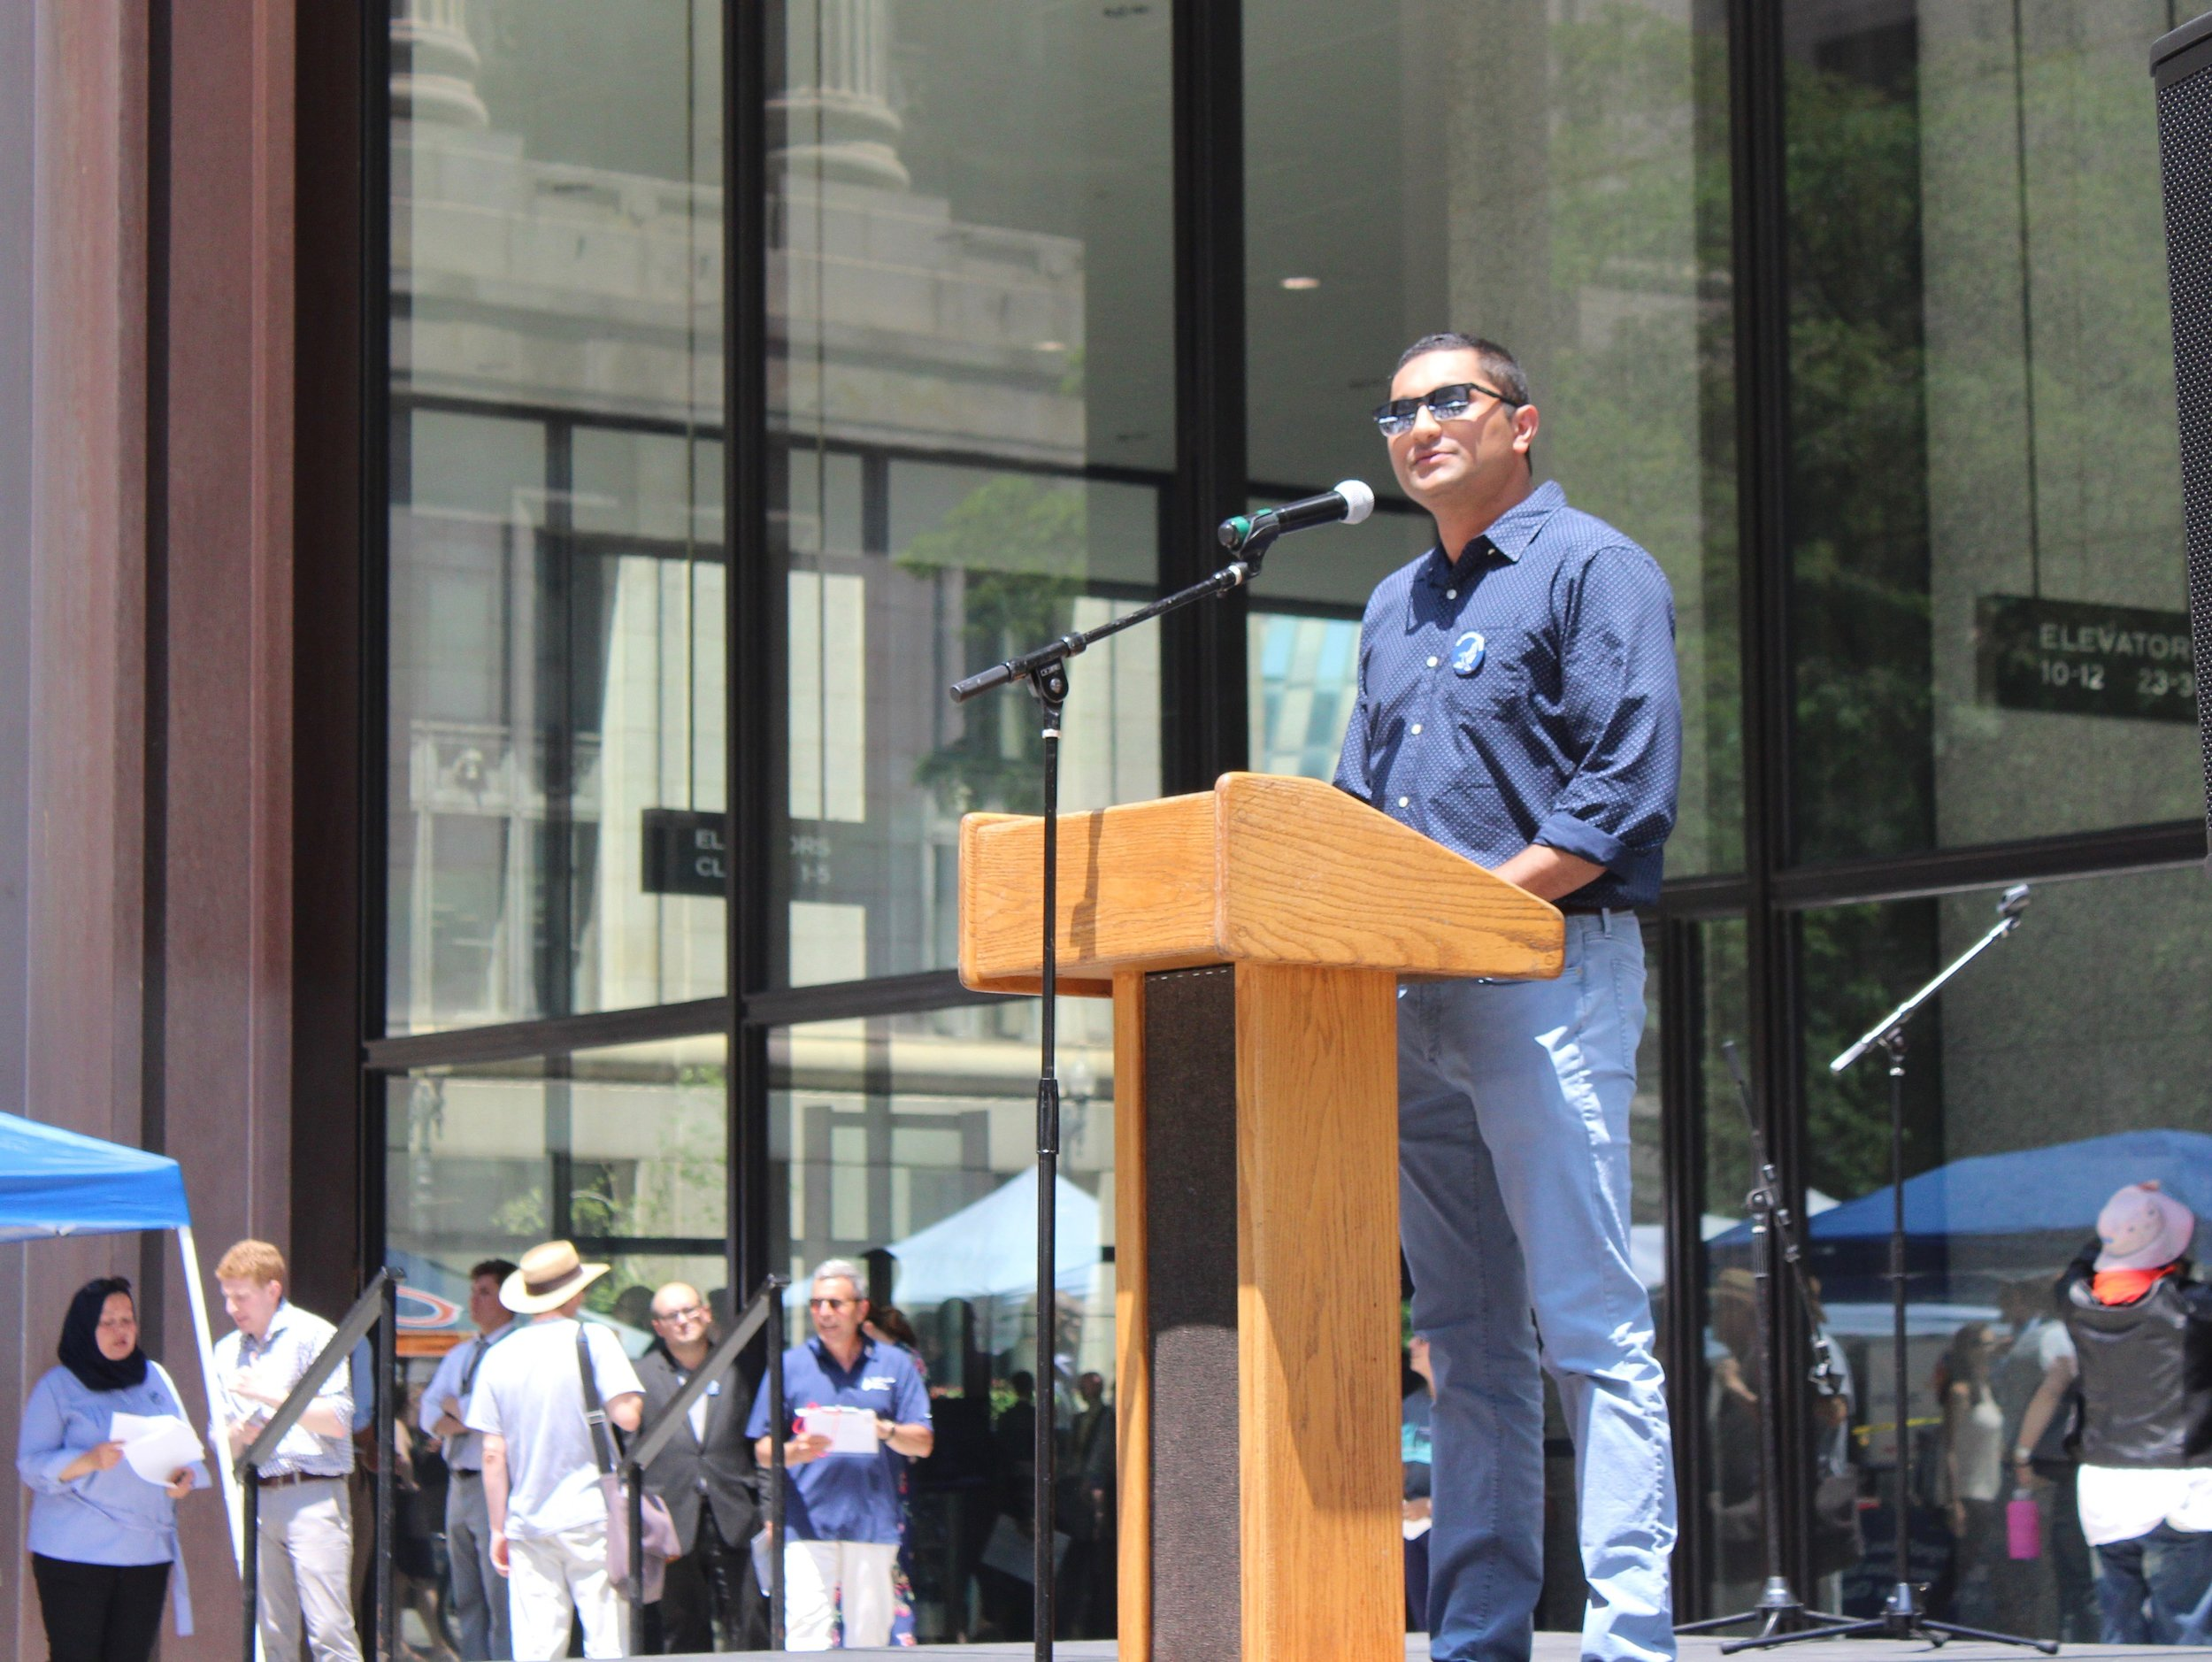 """""""We need to stand together and come together around our communities,"""" says Chicago Alderman Ameya Pawar. """"We need to lift one another up."""" (One Illinois/Ted Cox)"""